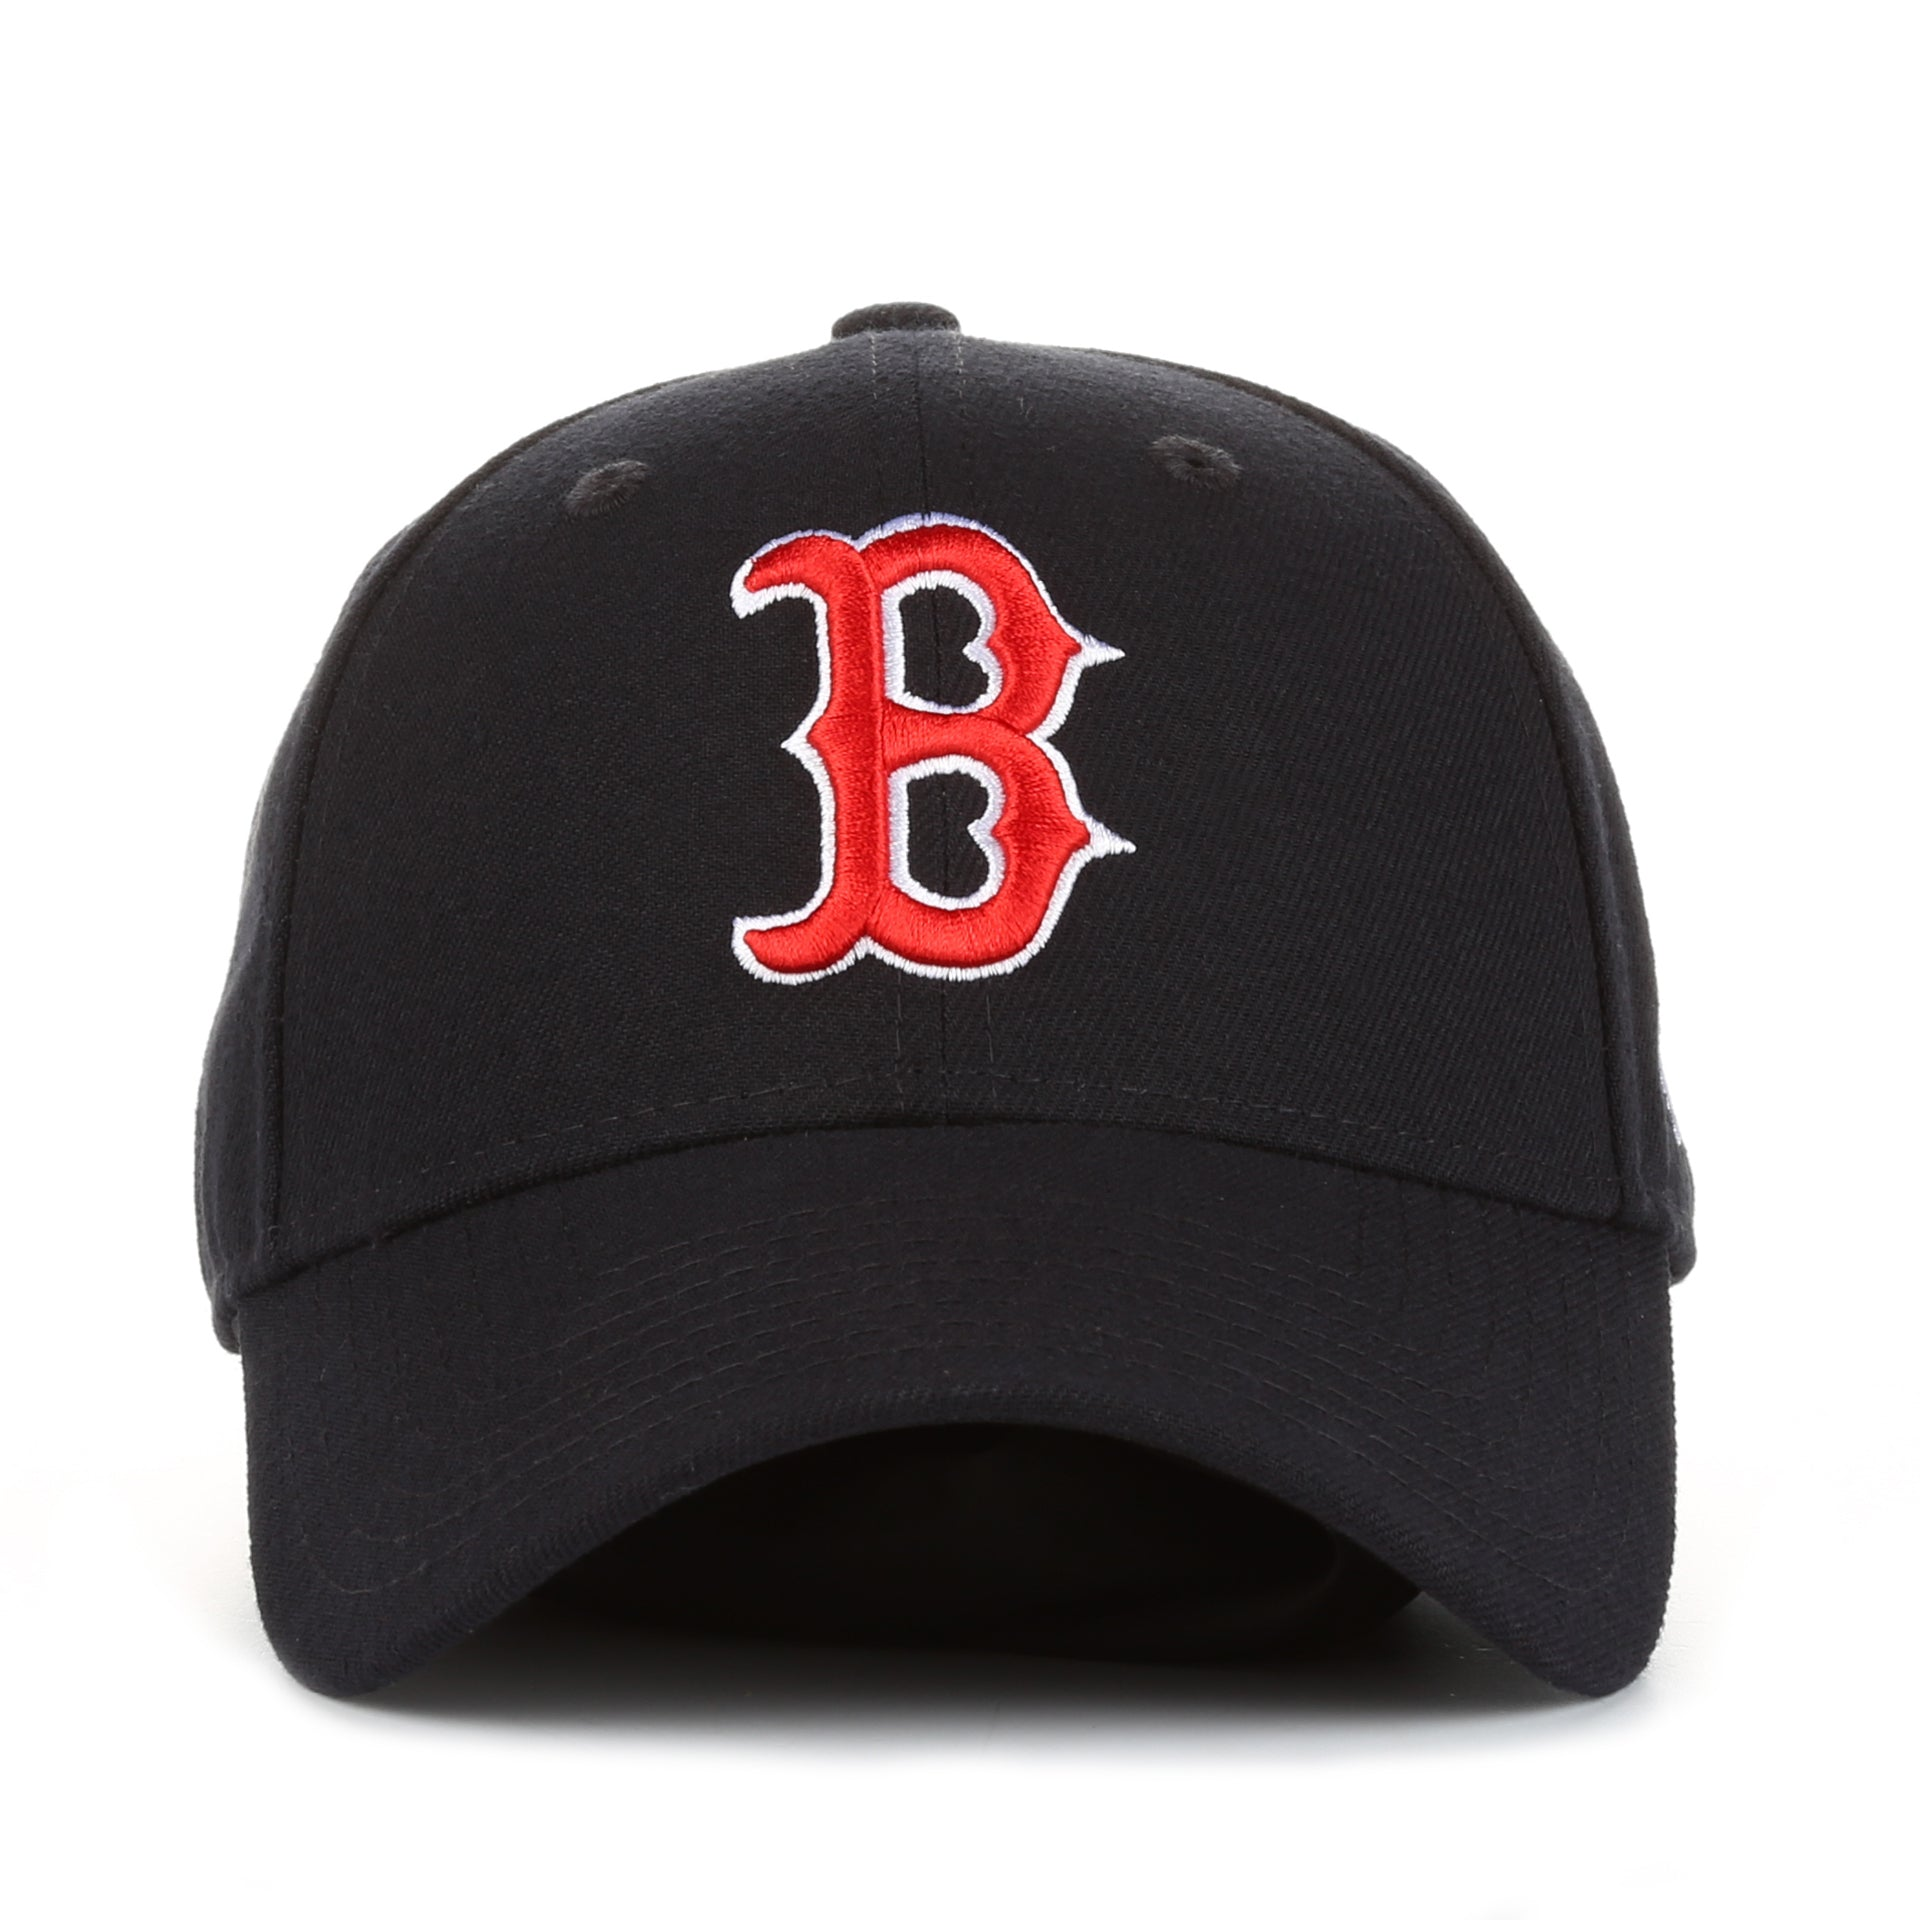 New Era 9Forty The League Game Cap - Boston Red Sox Navy - New Star 8fb6cef92e1